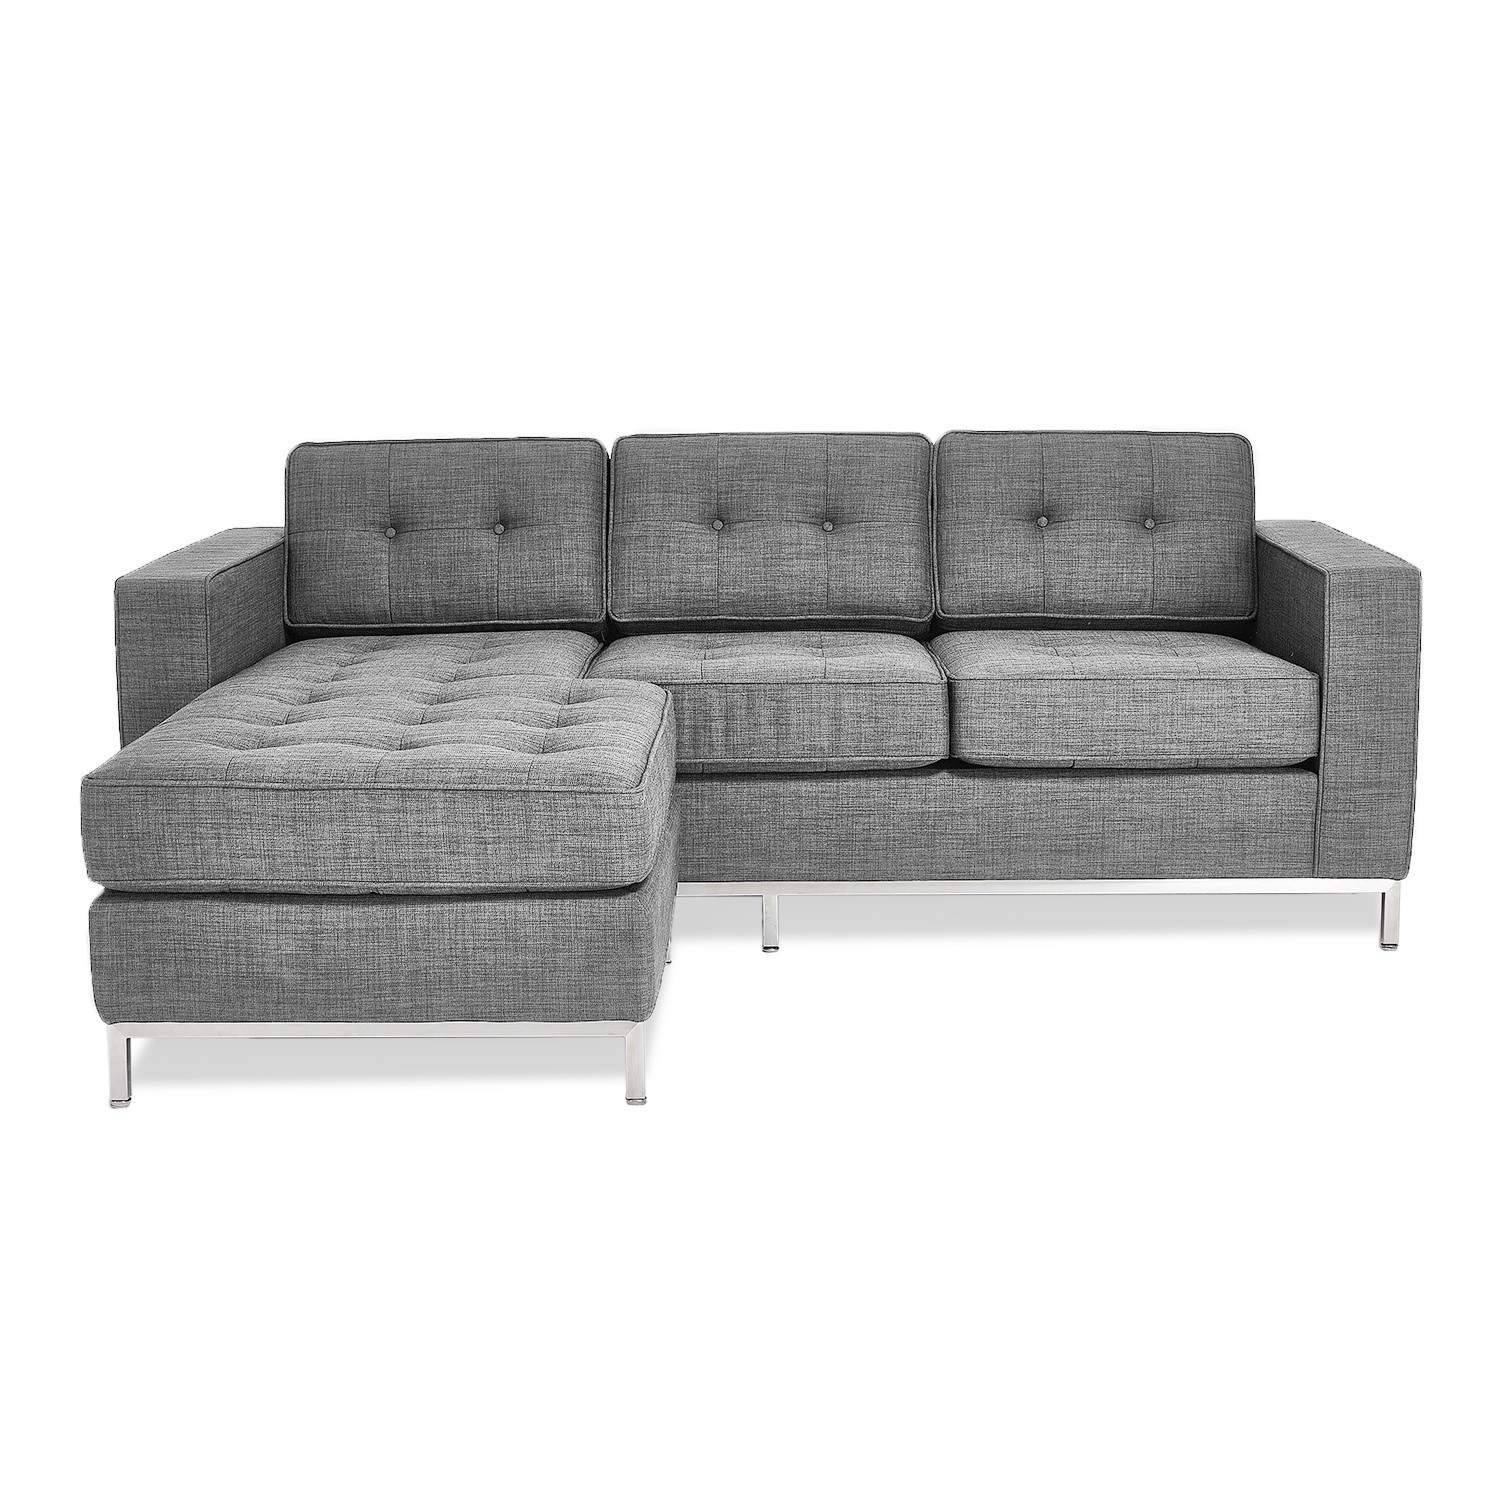 Gus* Modern Jane Loft Bi-Sectional – Abc Carpet & Home with Bisectional Sofa (Image 19 of 30)